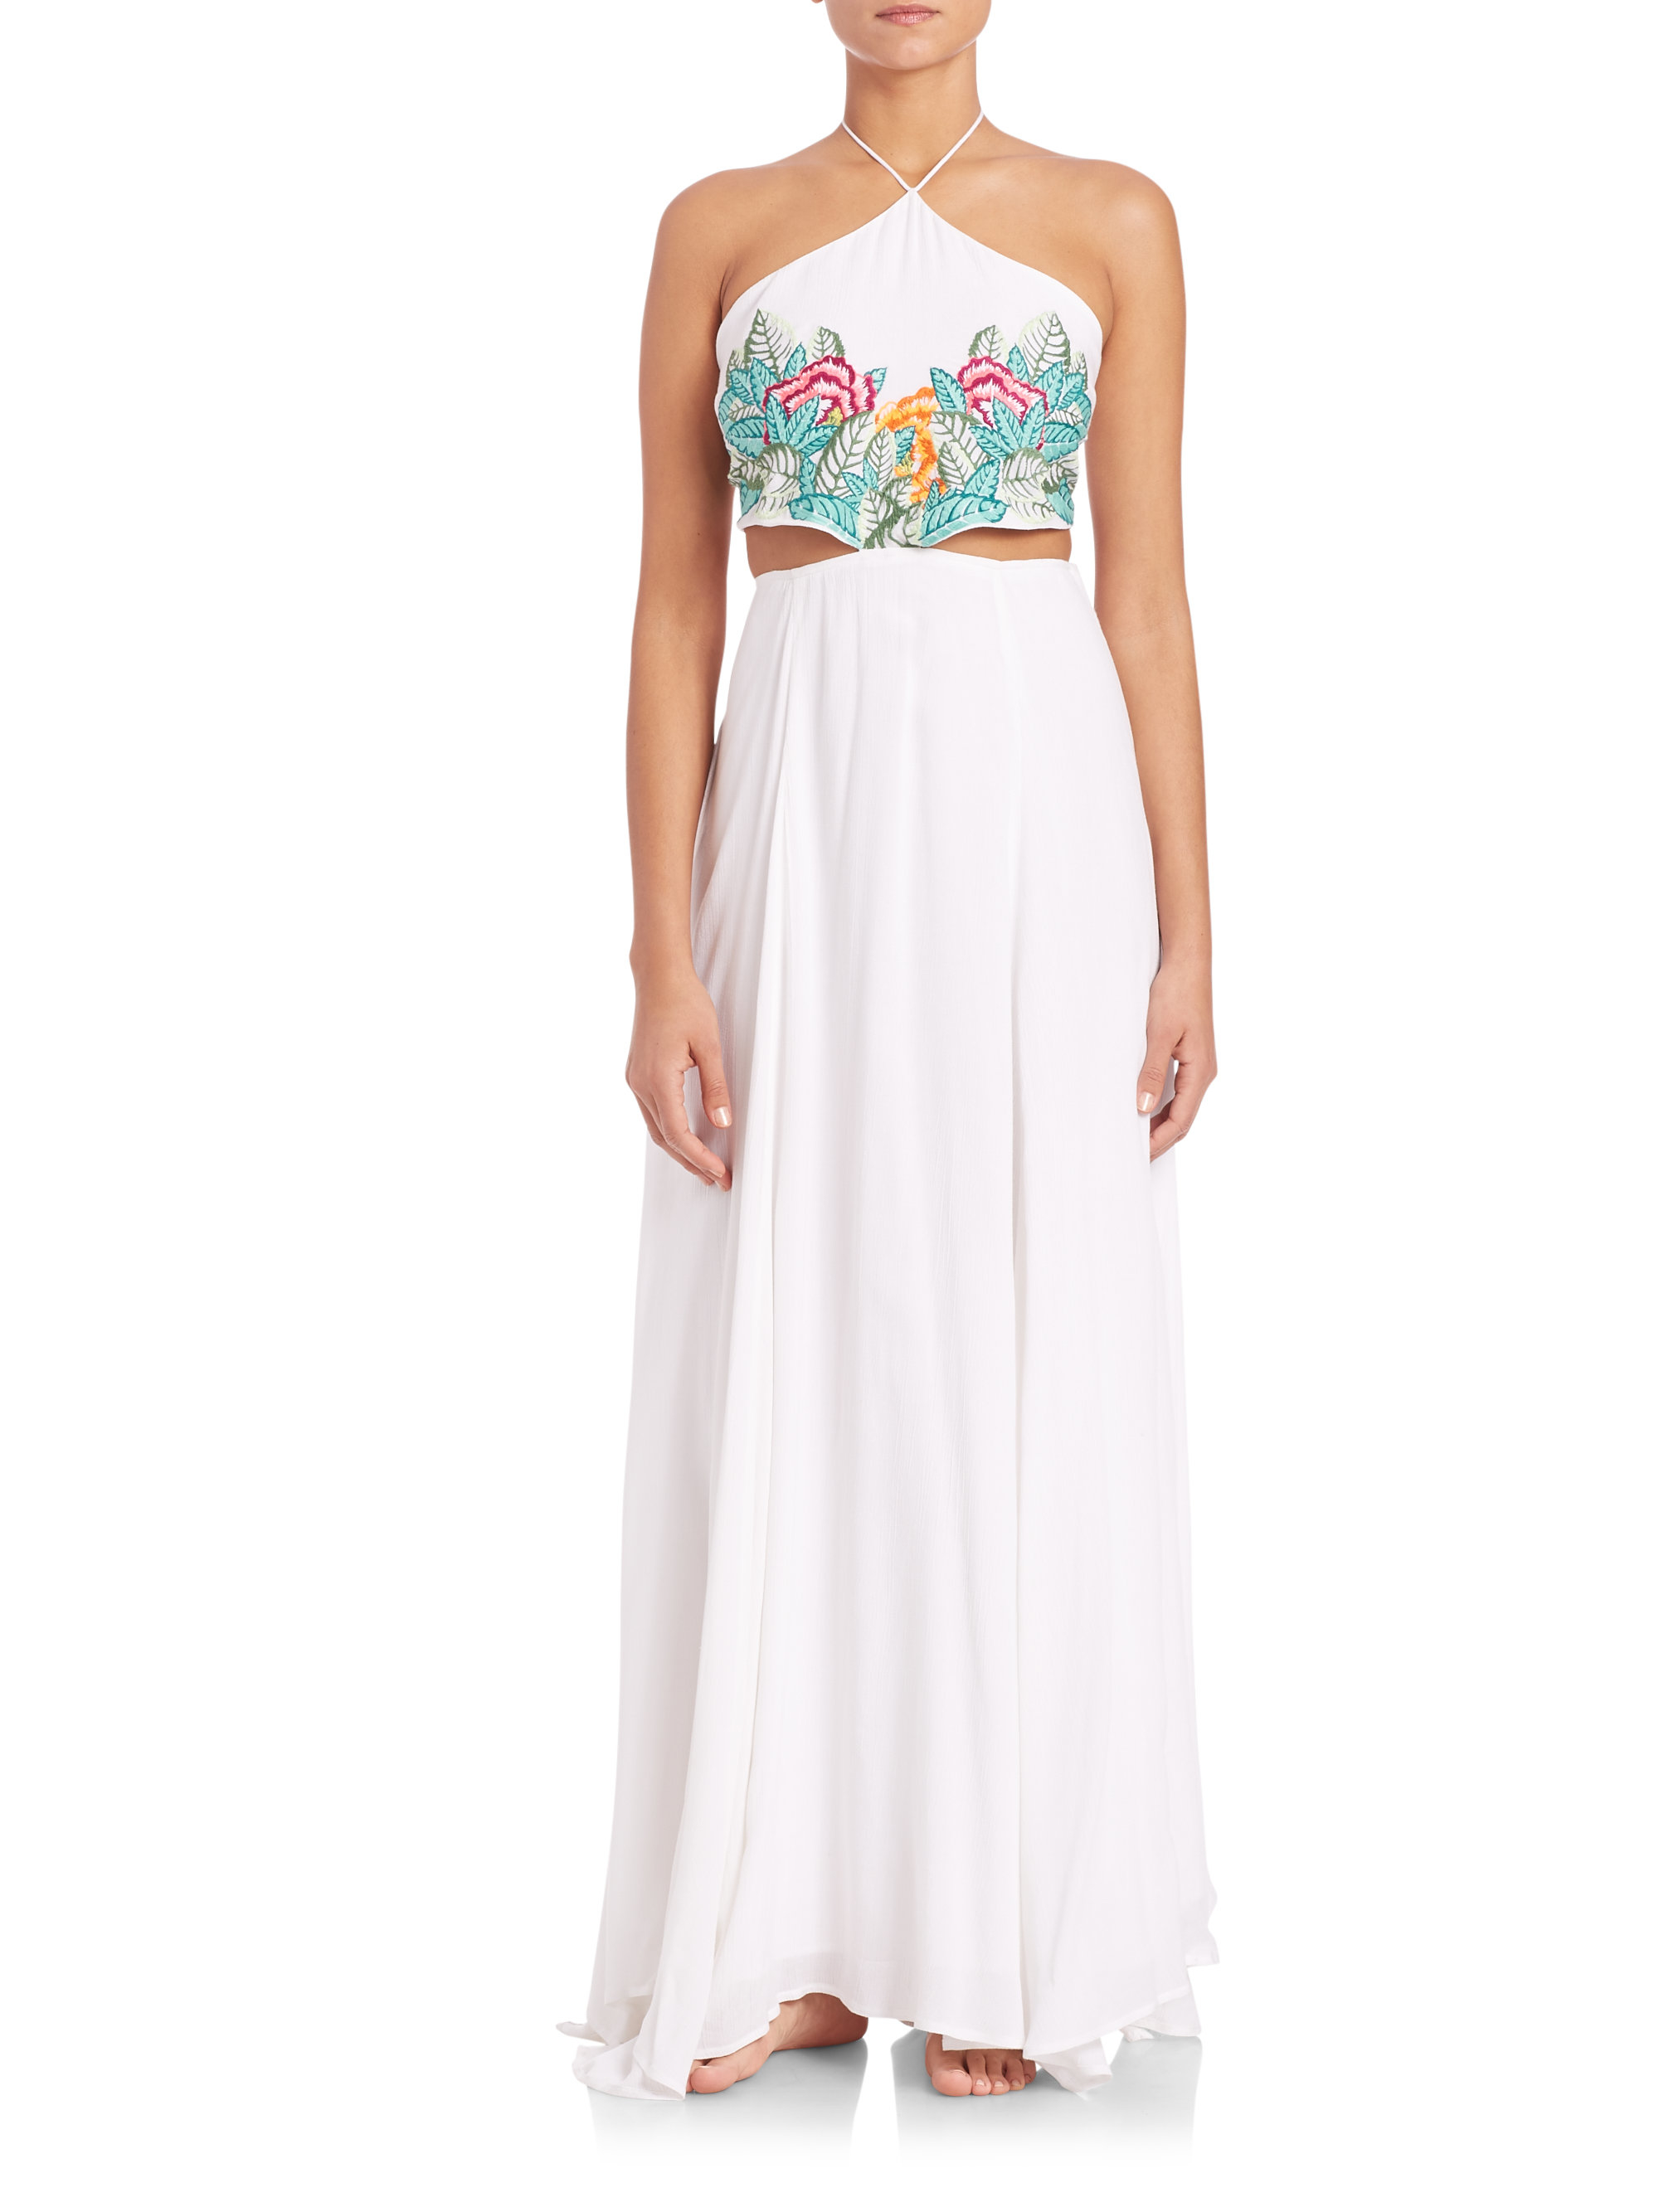 Mara hoffman leaf embroidered maxi dress in white lyst